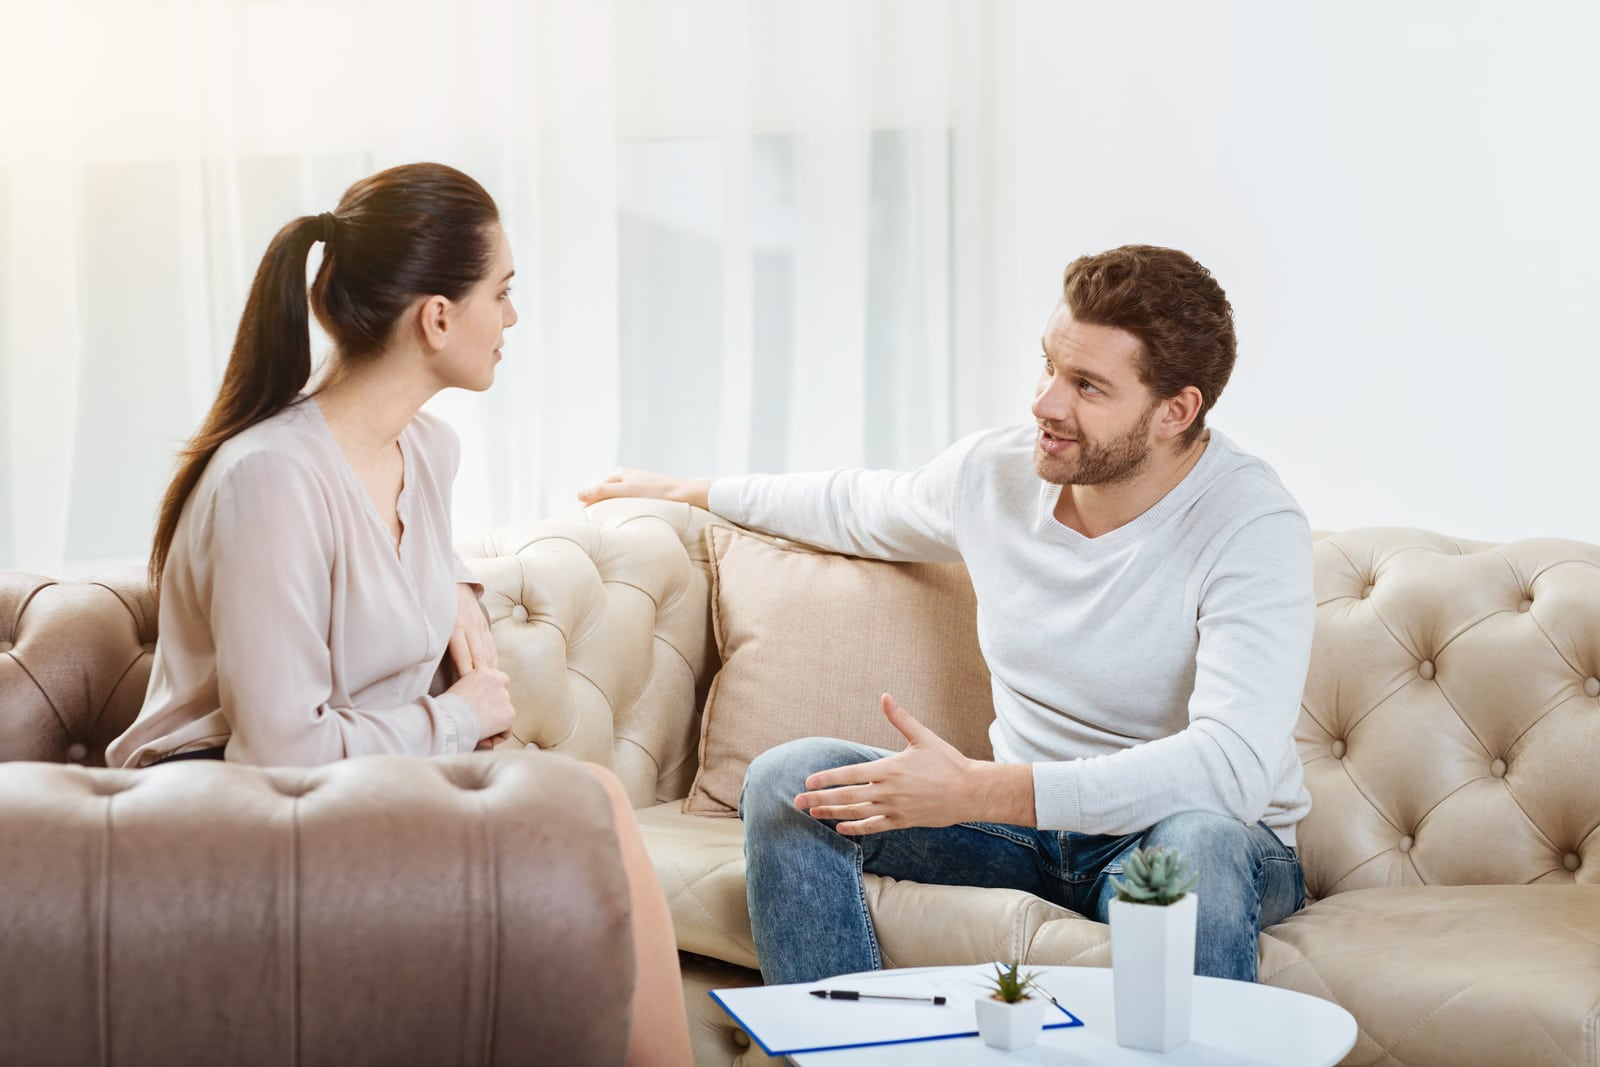 a man with a beard and a woman sitting and talking